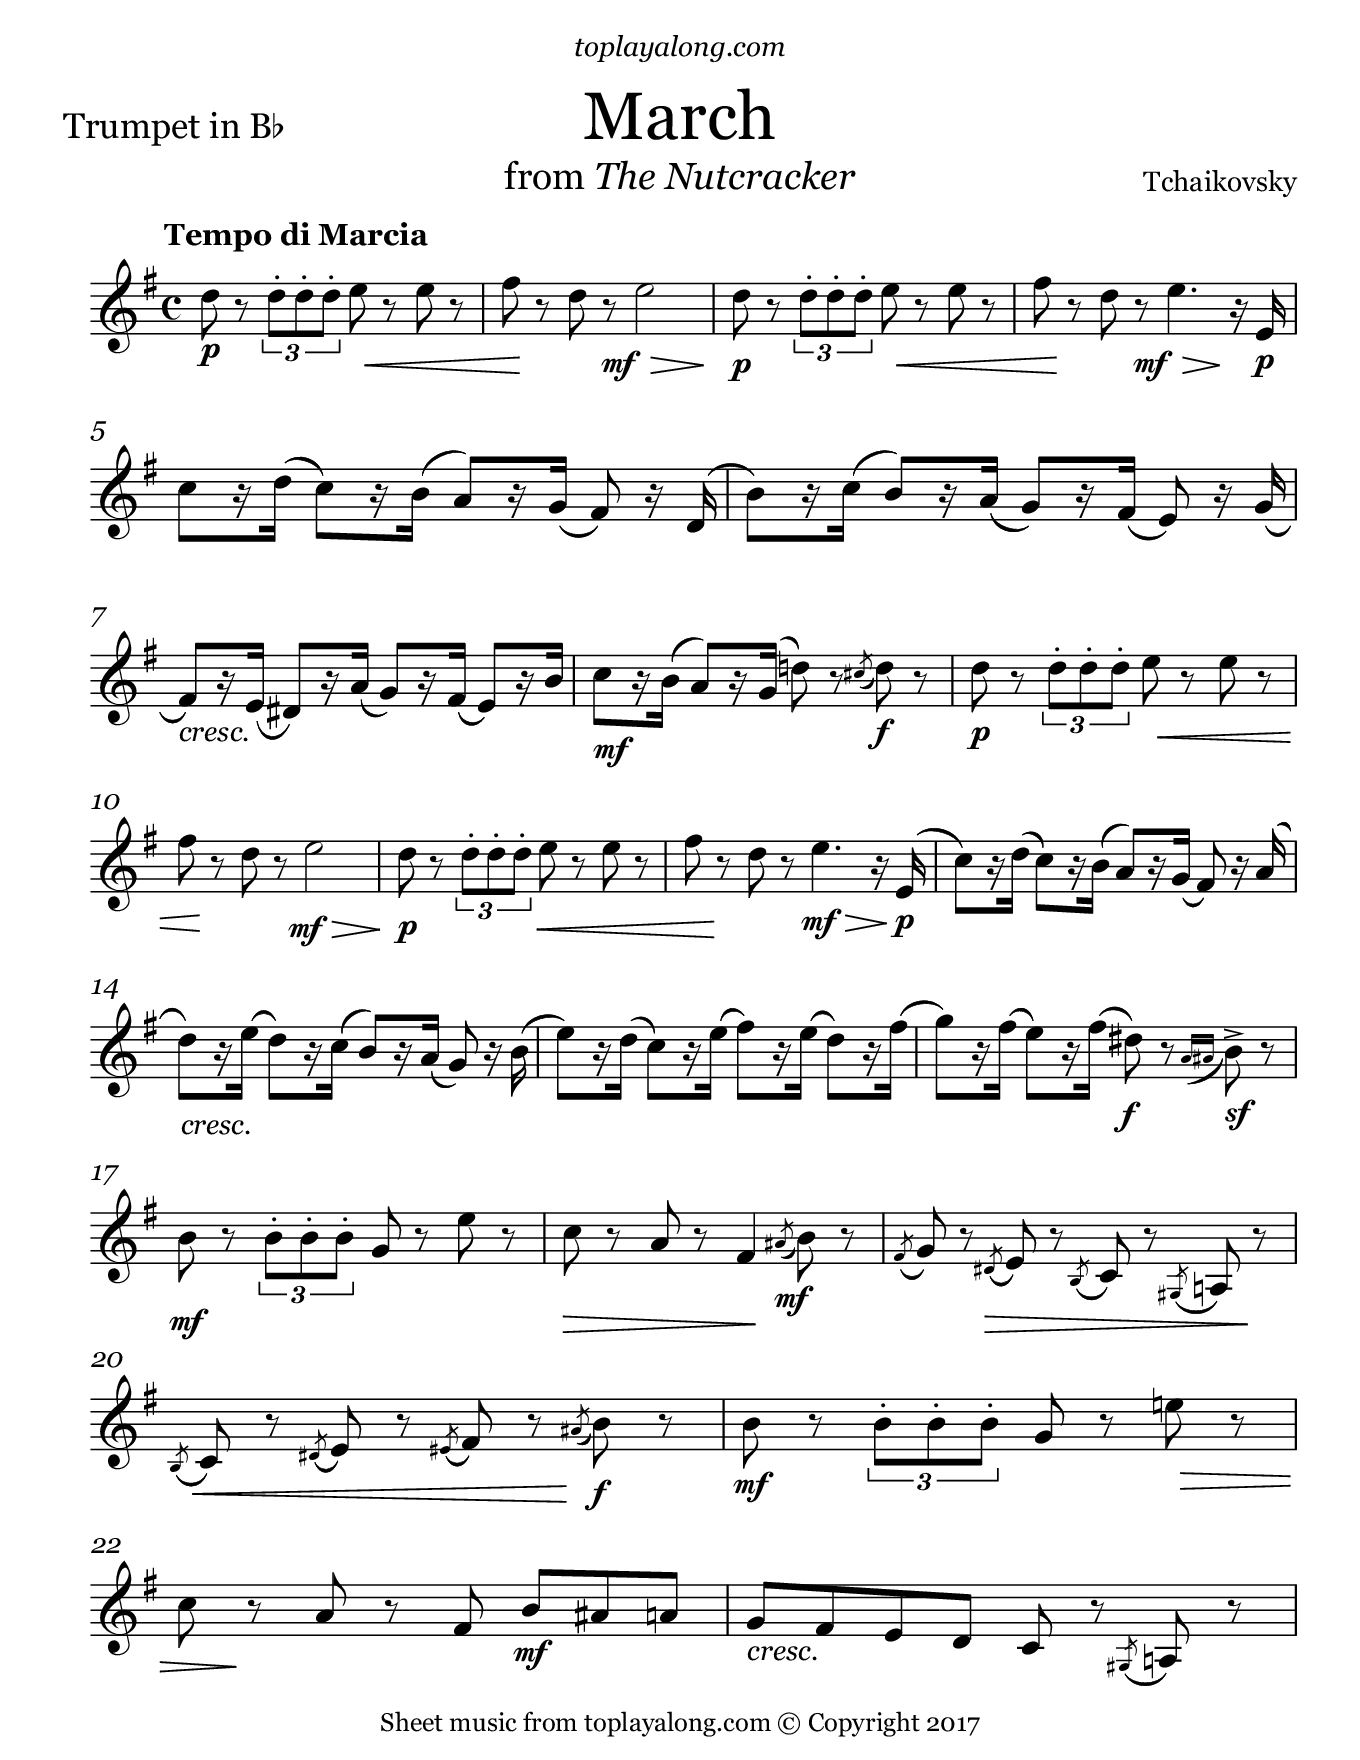 March from The Nutcracker by Tchaikovsky. Sheet music for Trumpet, page 1.